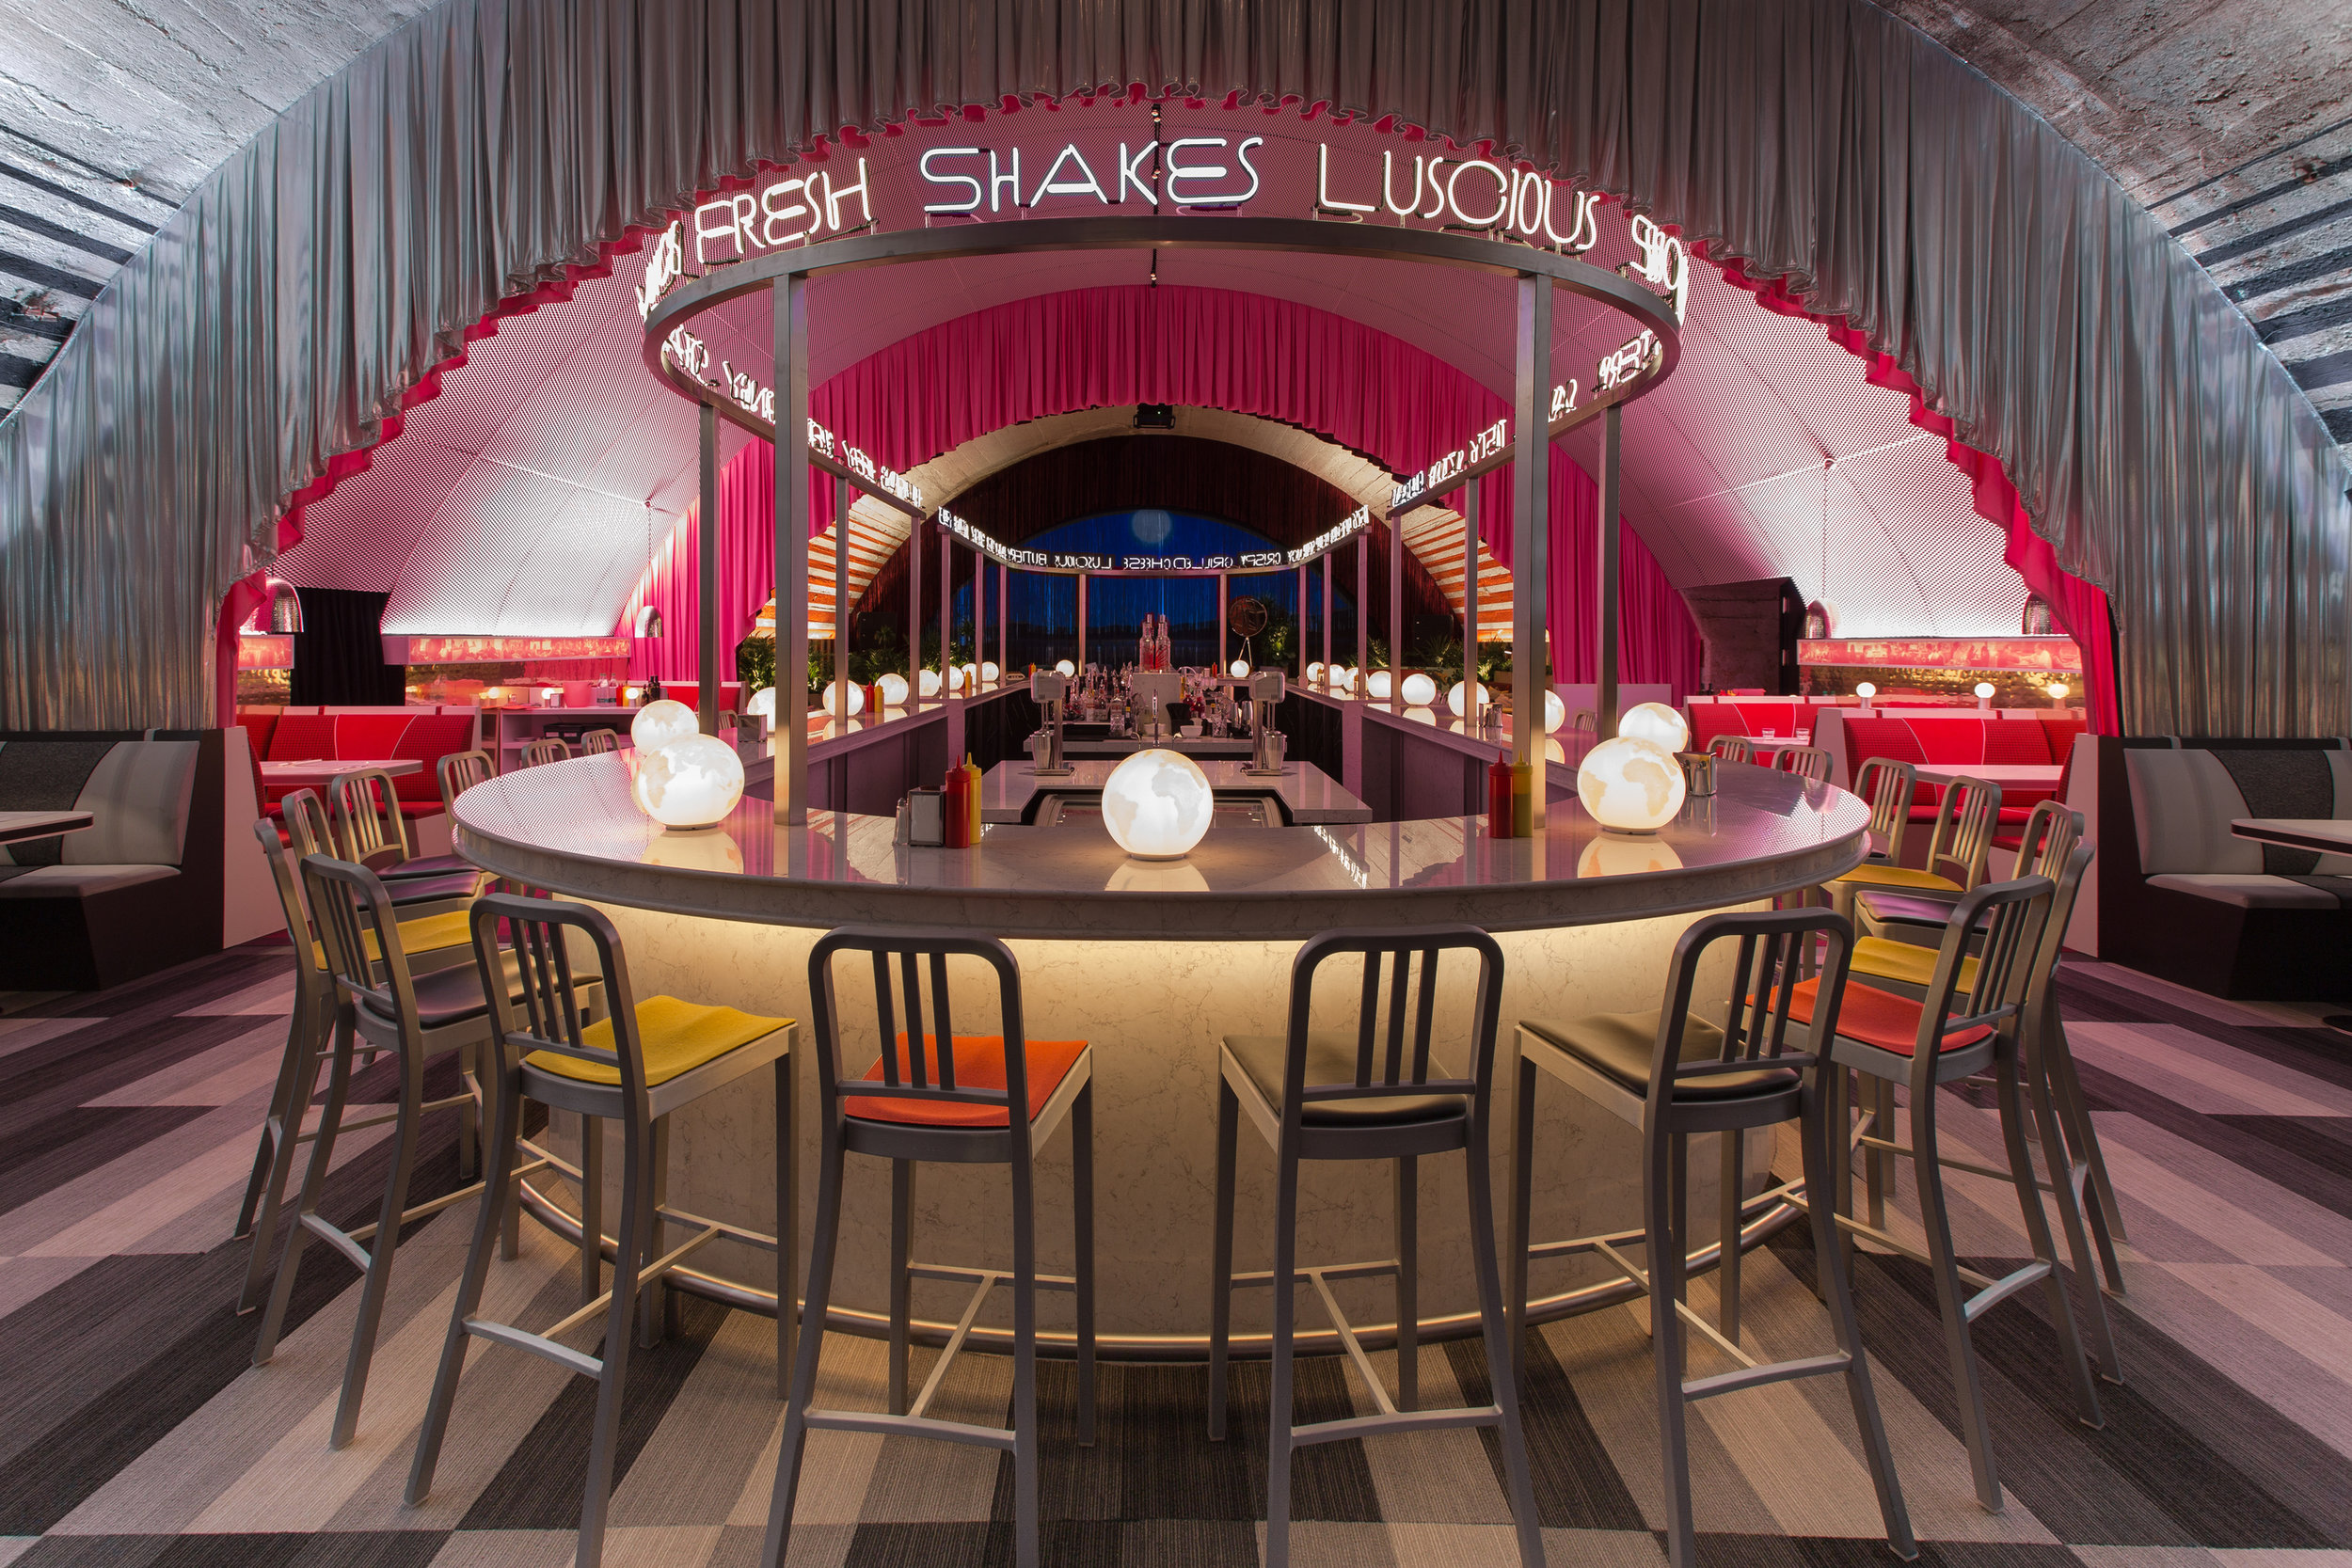 The Diner by David Rockwell + Surface with 2x4. Image credit - Michele de Candia